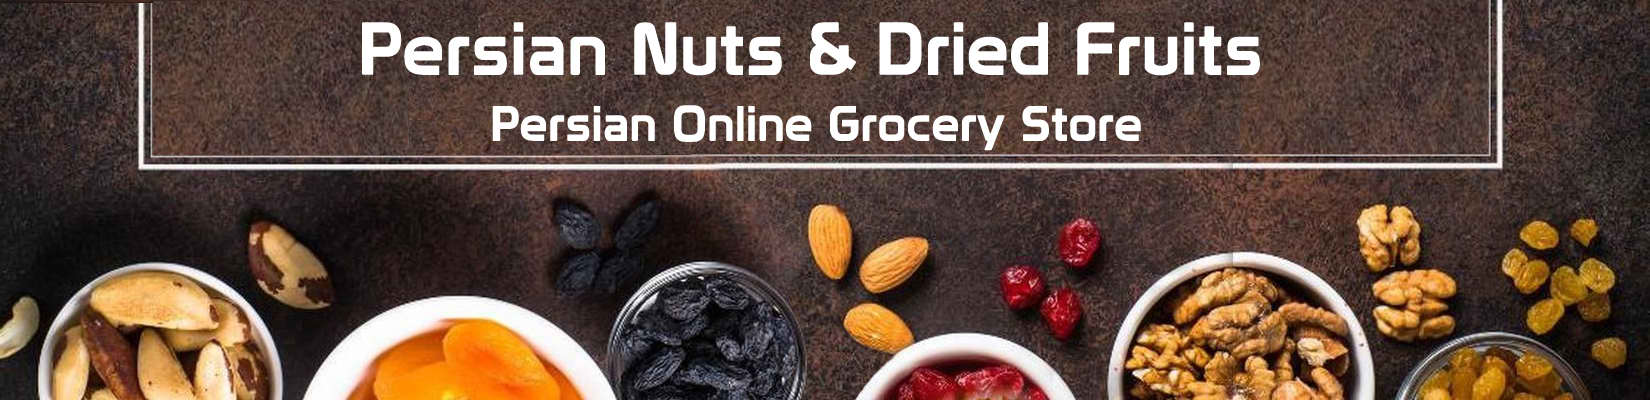 Online Persian Grocery Store | Persian Nuts & Dried Fruits